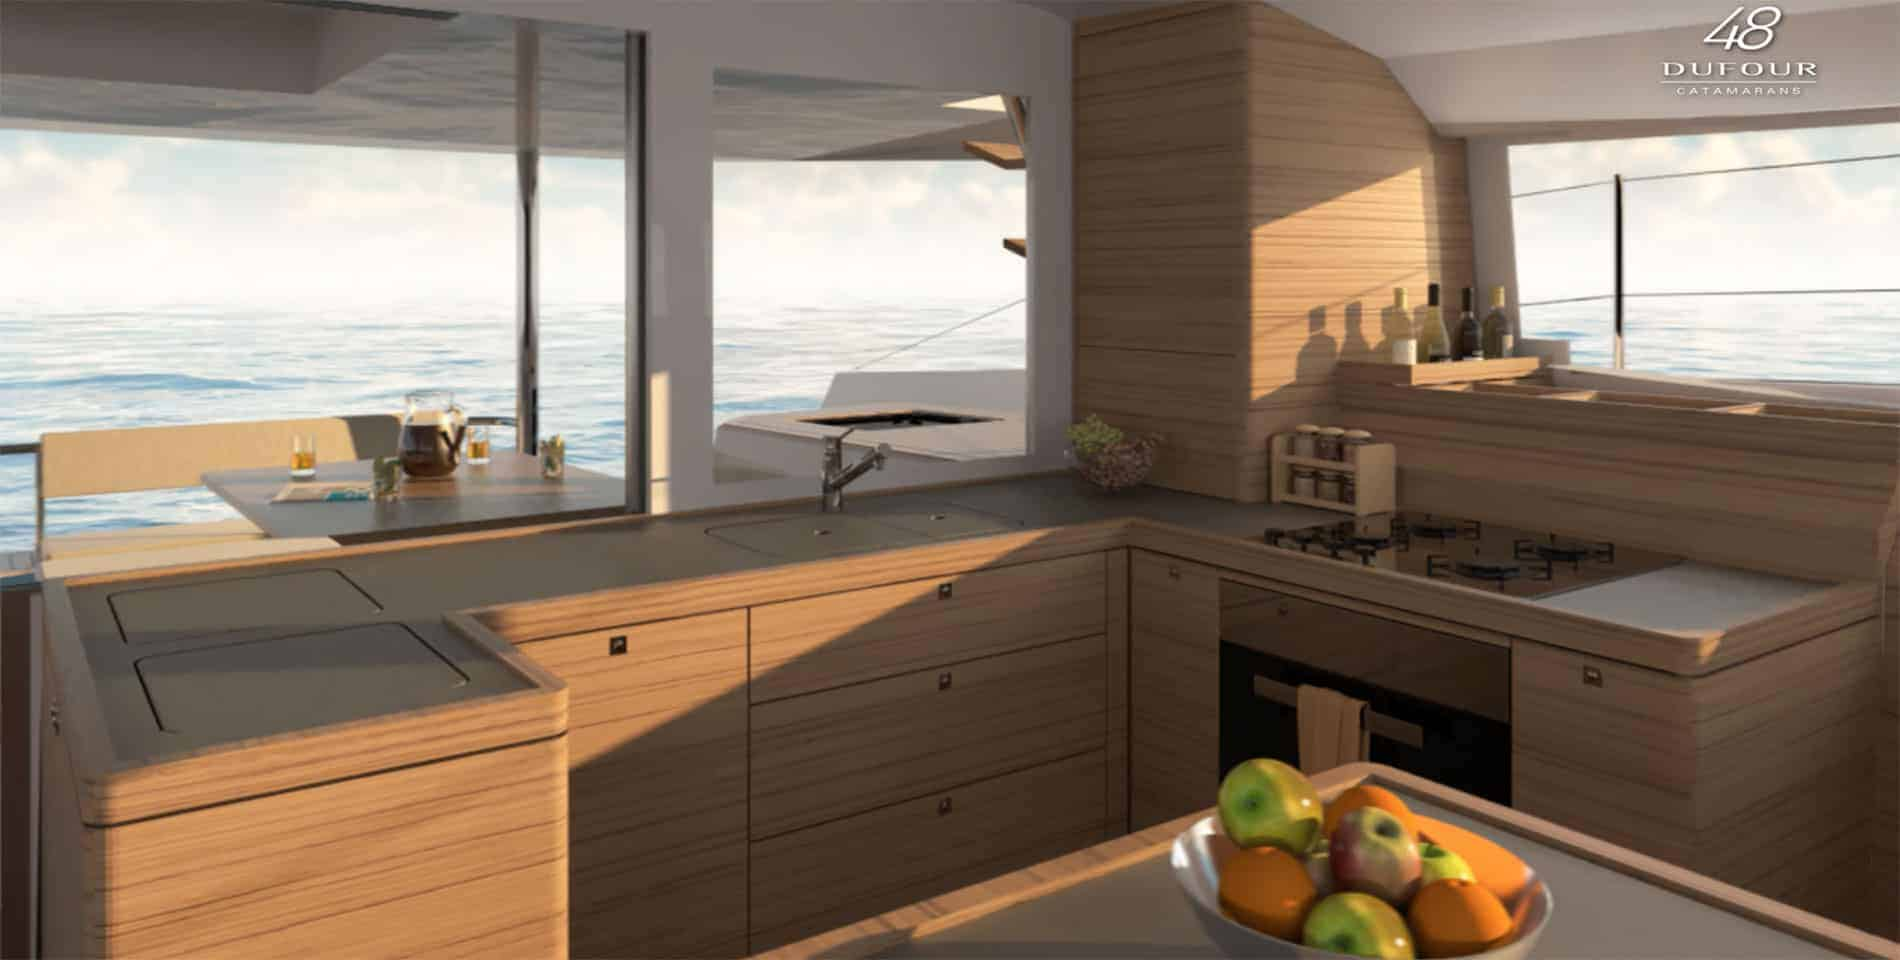 3D animated galley of the Dufour Catamaran 48 with nice view of the water outside and a bowl of fruit in the foreground